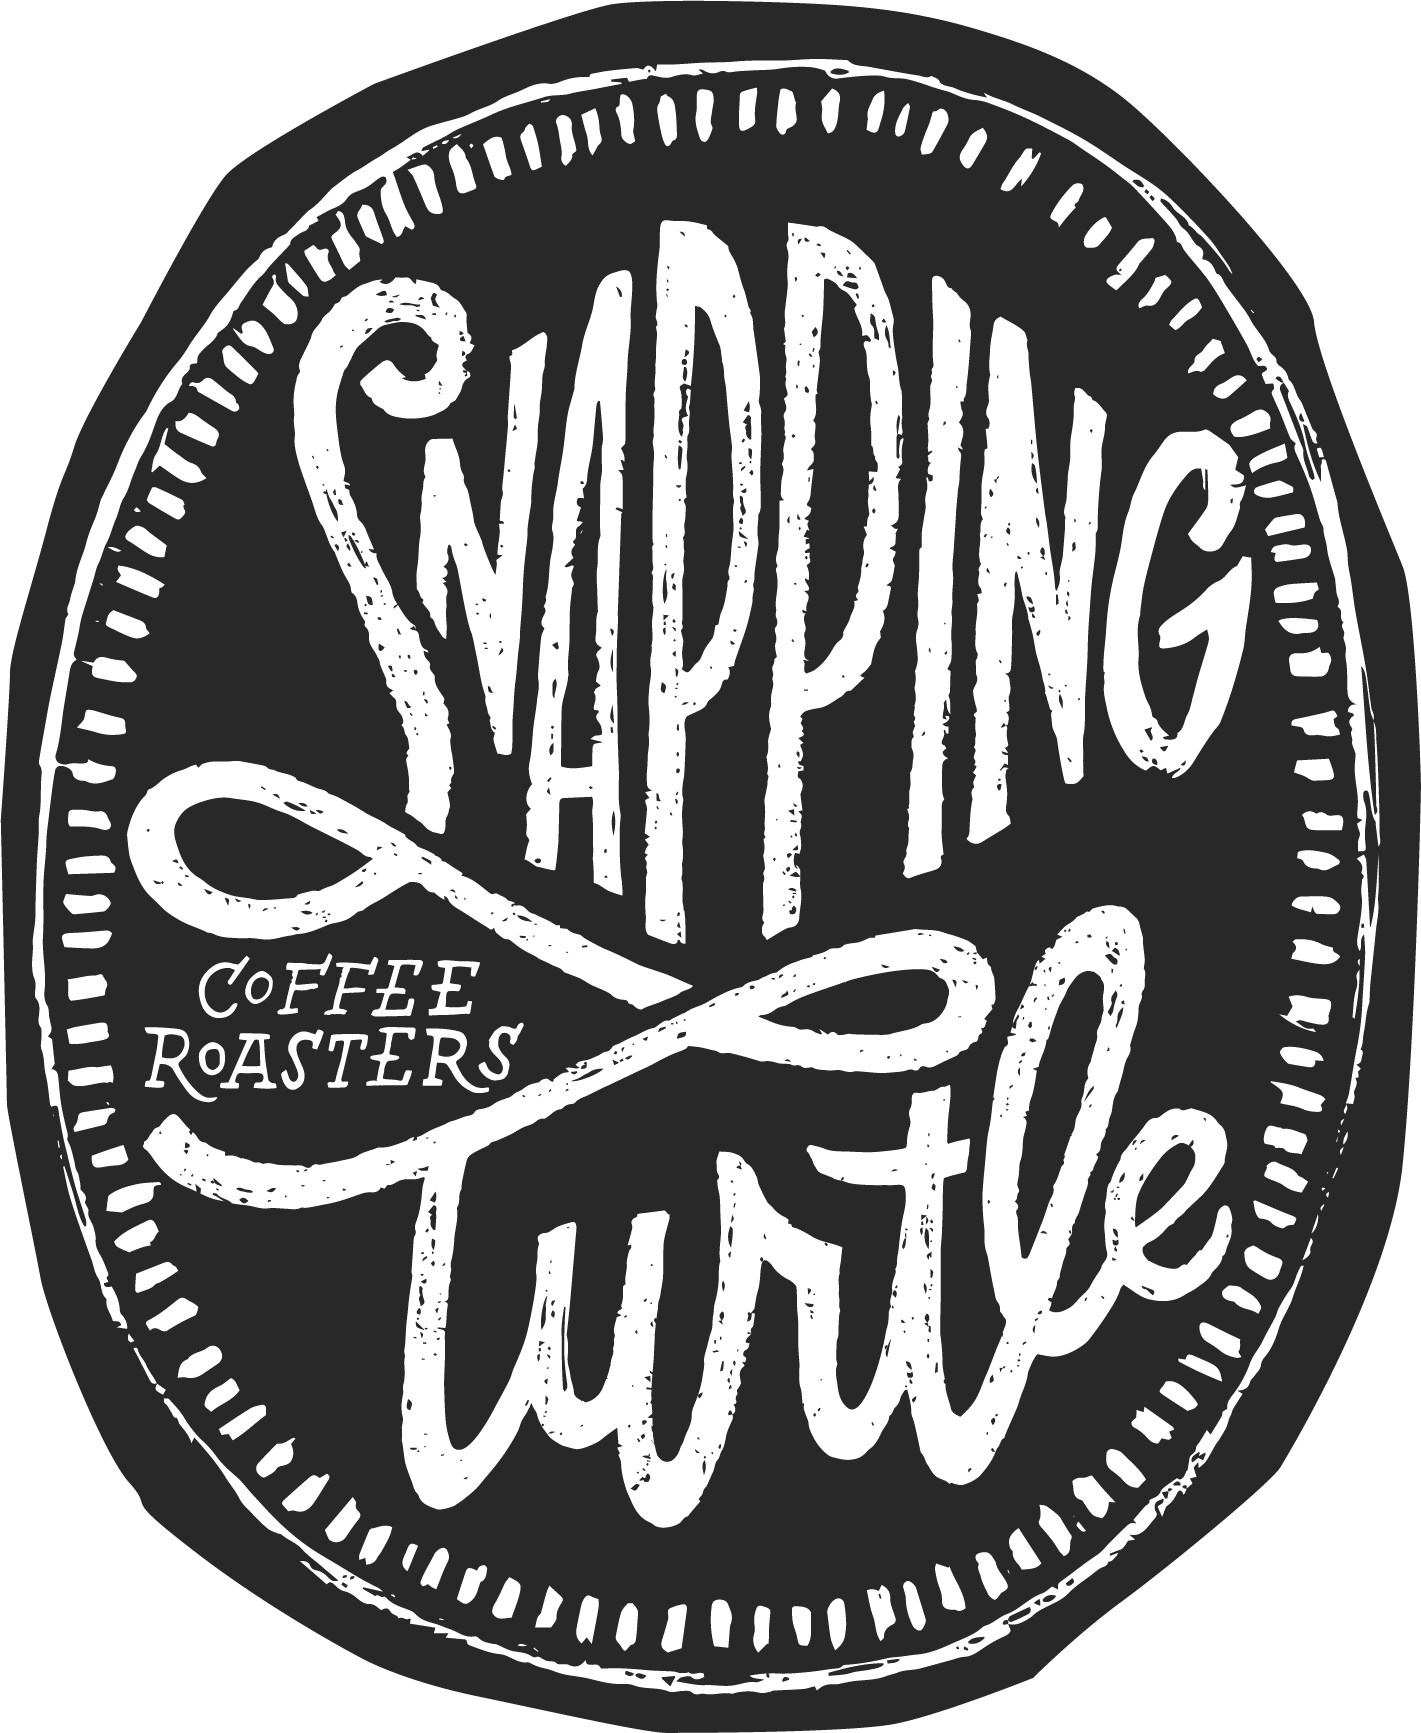 Snapping Turtle Coffee Roasters